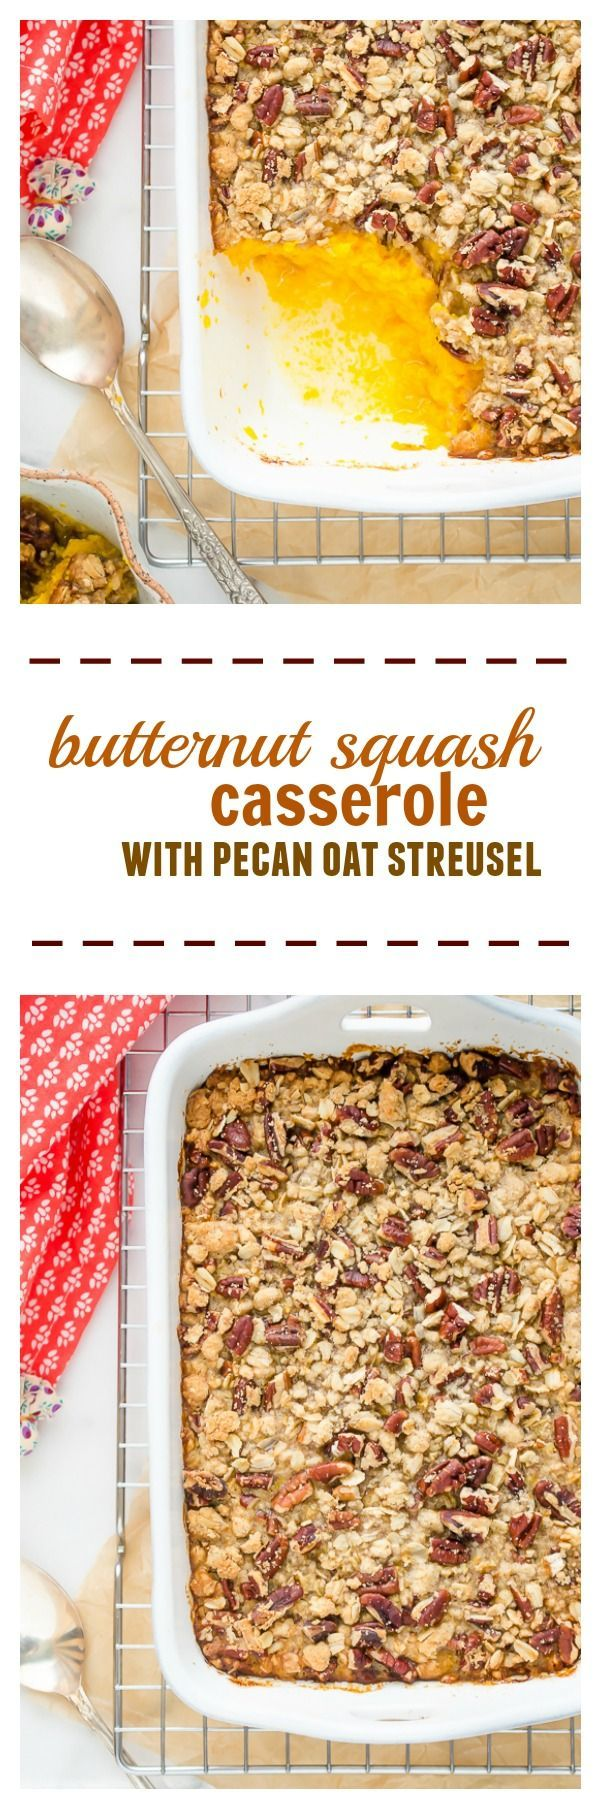 Butternut Squash Casserole with Pecan Oat Streusel is classic sweet potato casserole with a delicious butternut squash twist! @FlavortheMoment